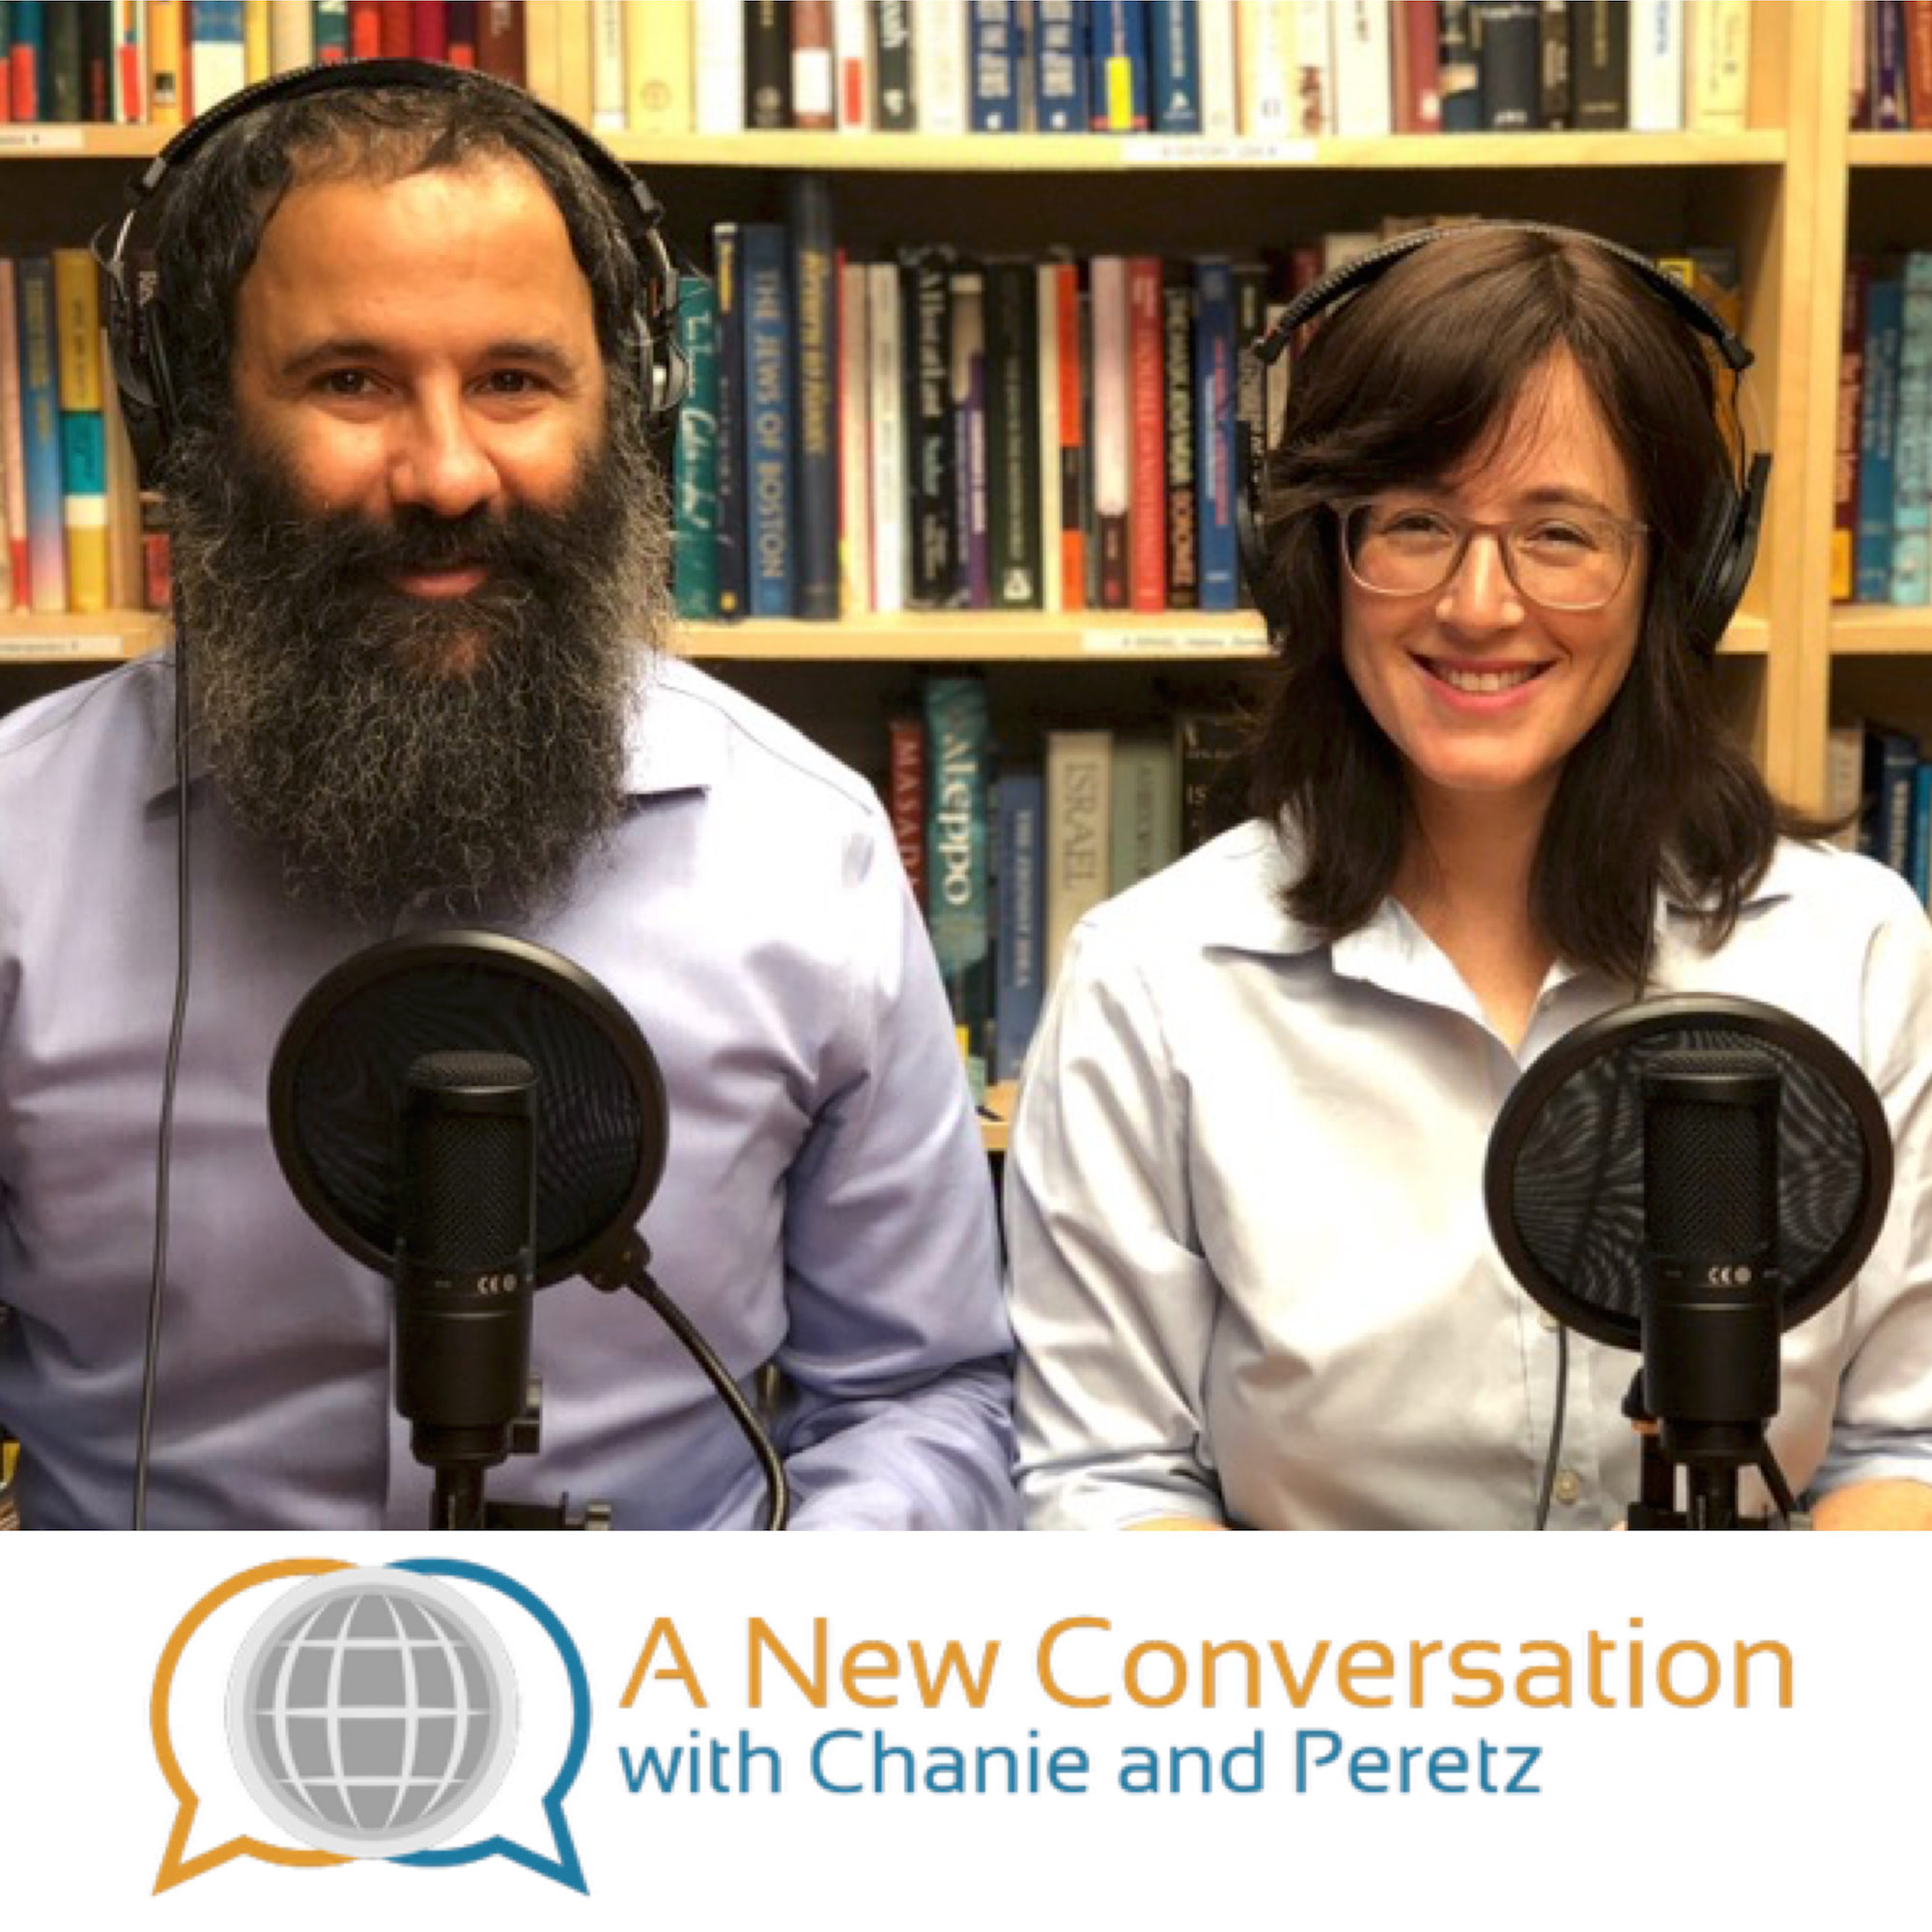 Artwork for podcast A New Conversation with Chanie and Peretz